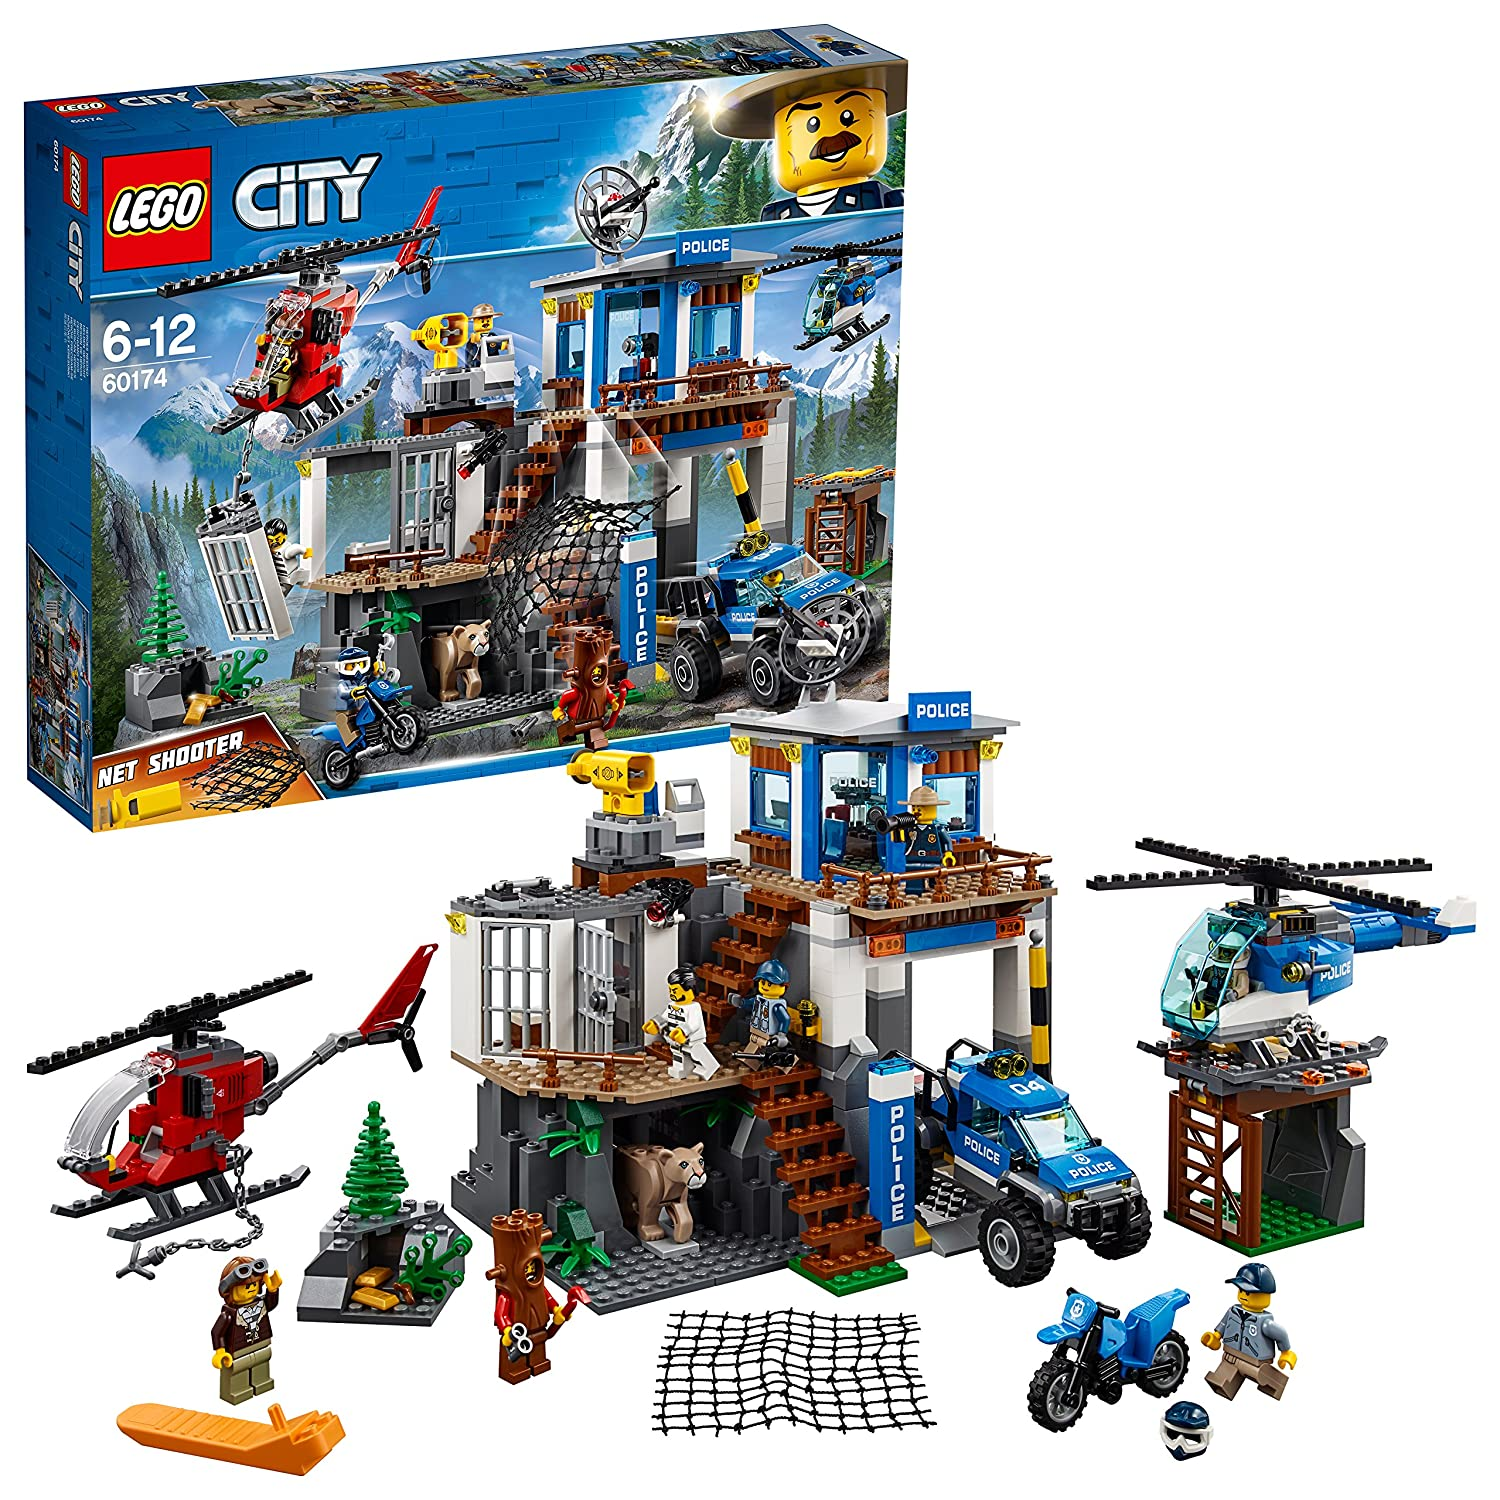 Lego 60174 City Police Mountain Headquarters Building Set Toy Bad Boy Buggy Wiring Schematic Helicopter And 4x4 Car Toys For Kids Games